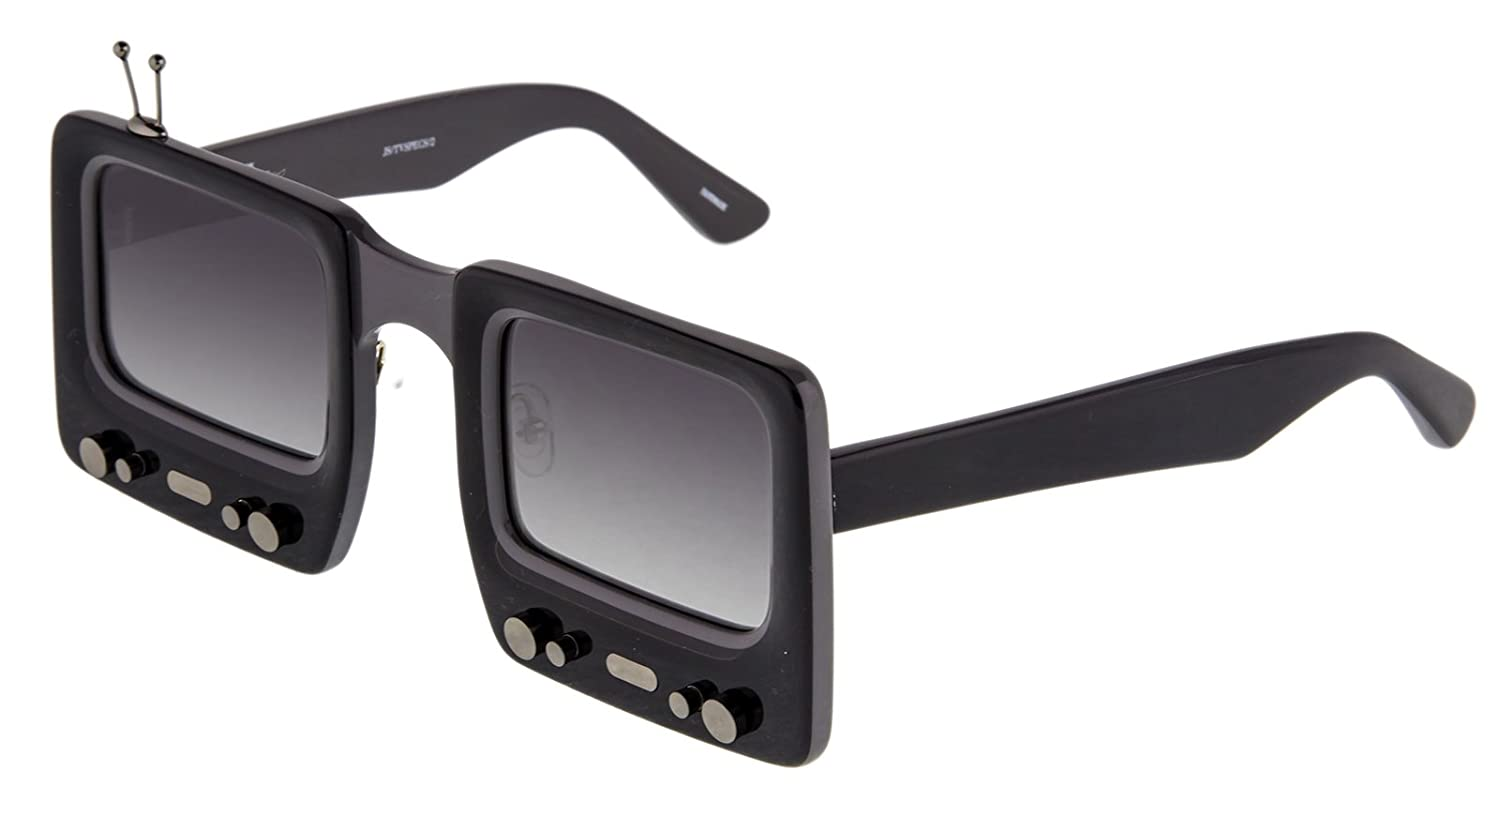 594f3d5f858a Amazon.com  LINDA FARROW Jeremy Scott TV SPECS Black Grey Polarized  Sunglasses TVSPECS  Clothing